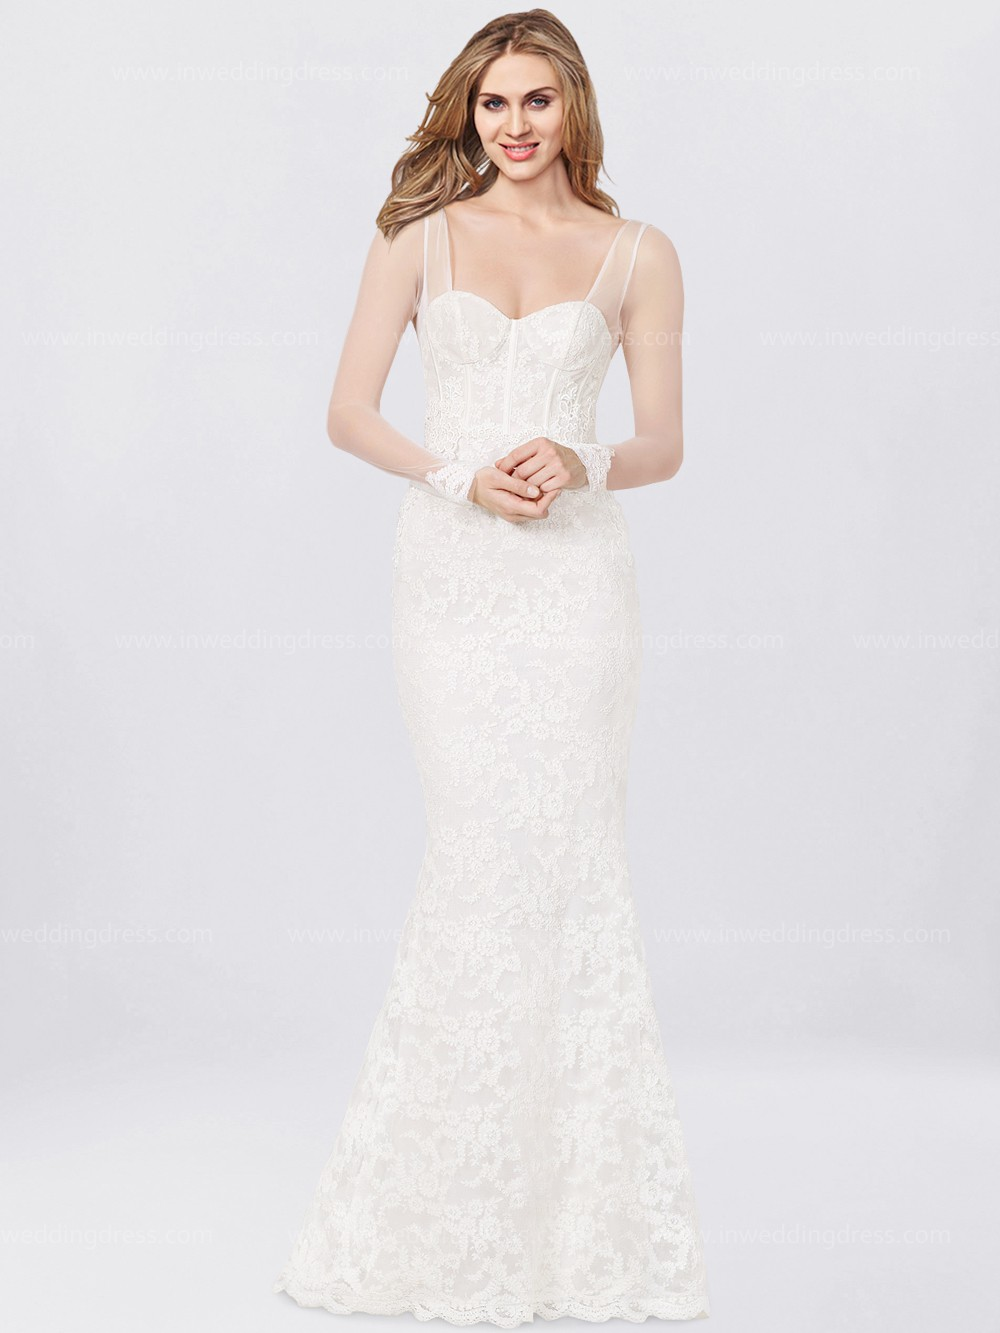 Long Sleeves Lace Wedding Dress £218